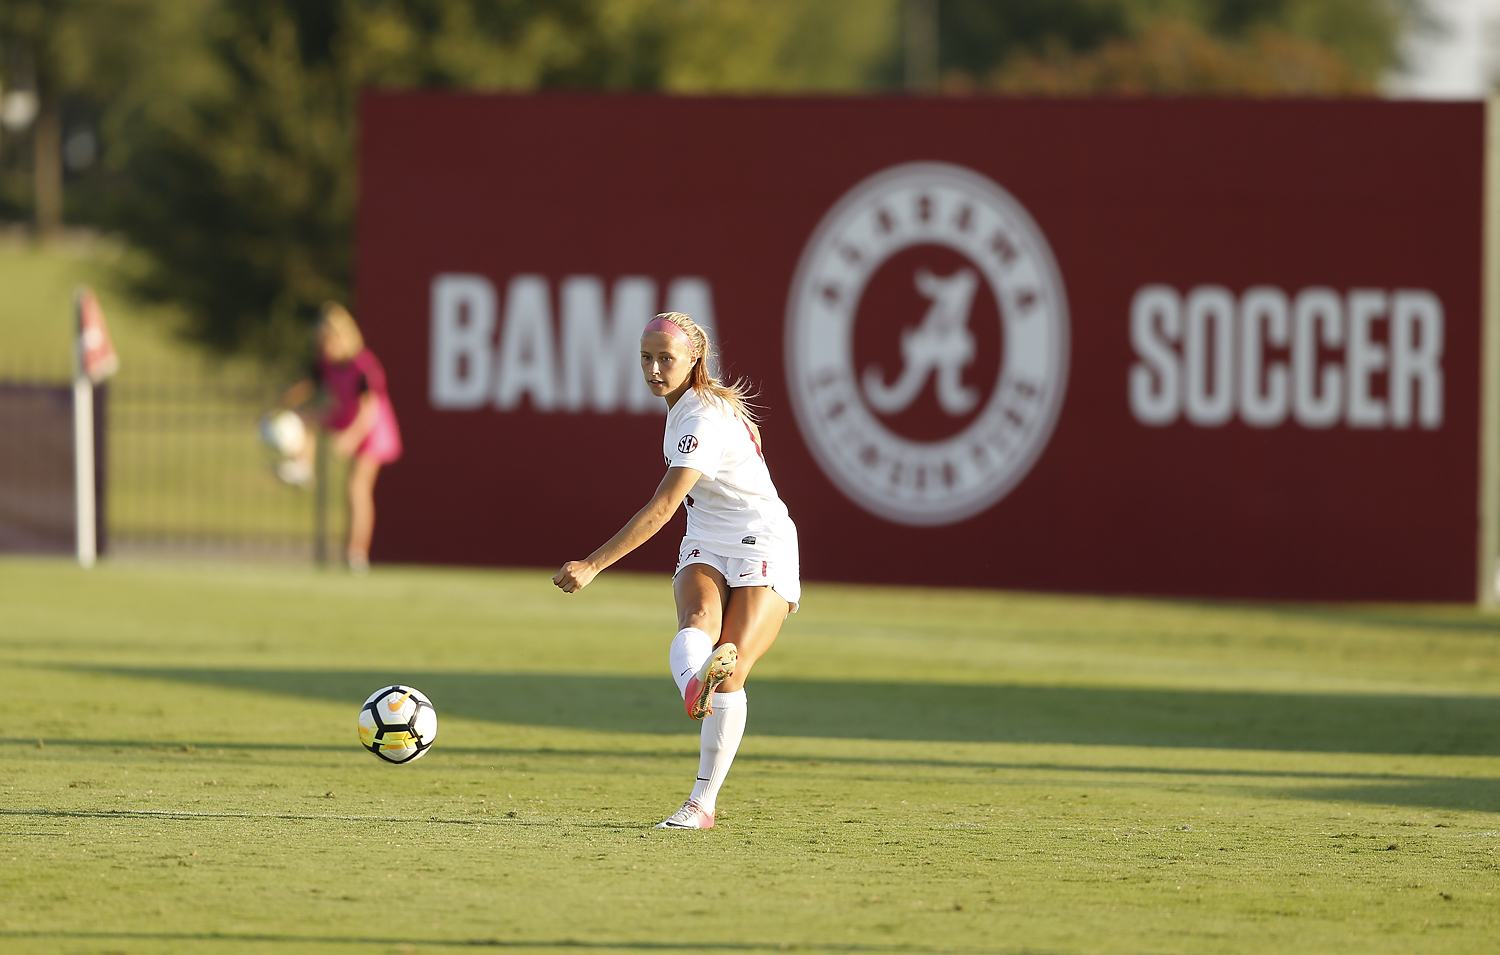 2d3643c11 Alabama Soccer Ranked No. 24 in Soccer America Top-25 Poll ...